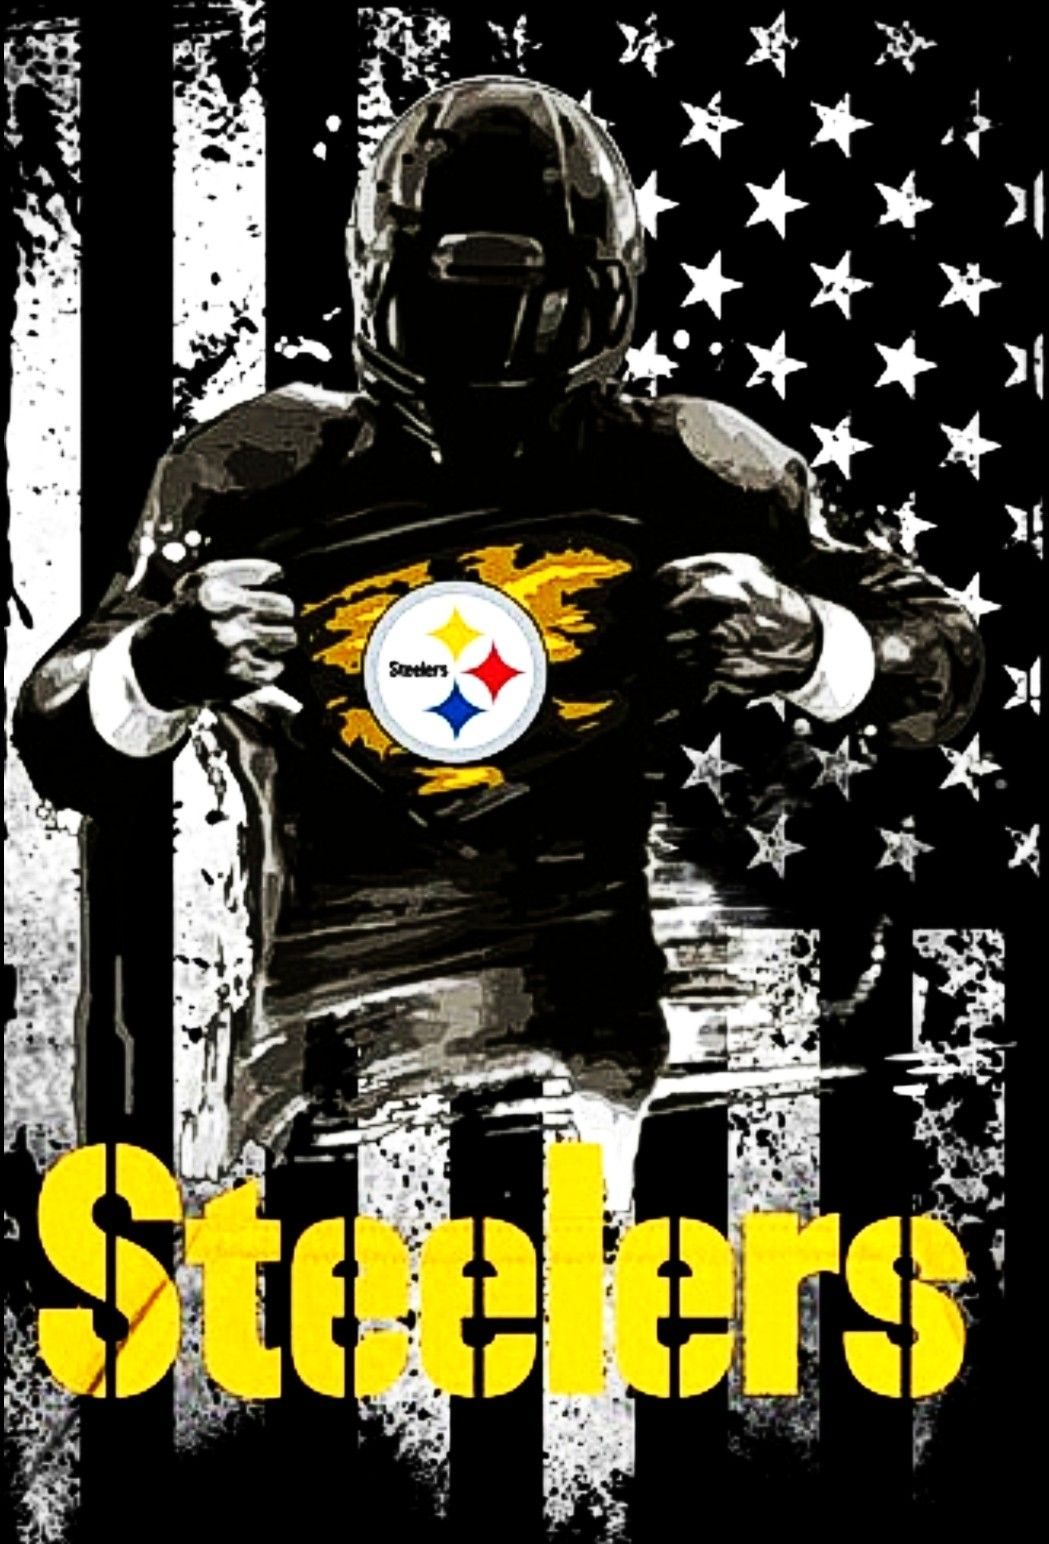 steelergalfan4life 🖤💛 Pittsburgh steelers helmet